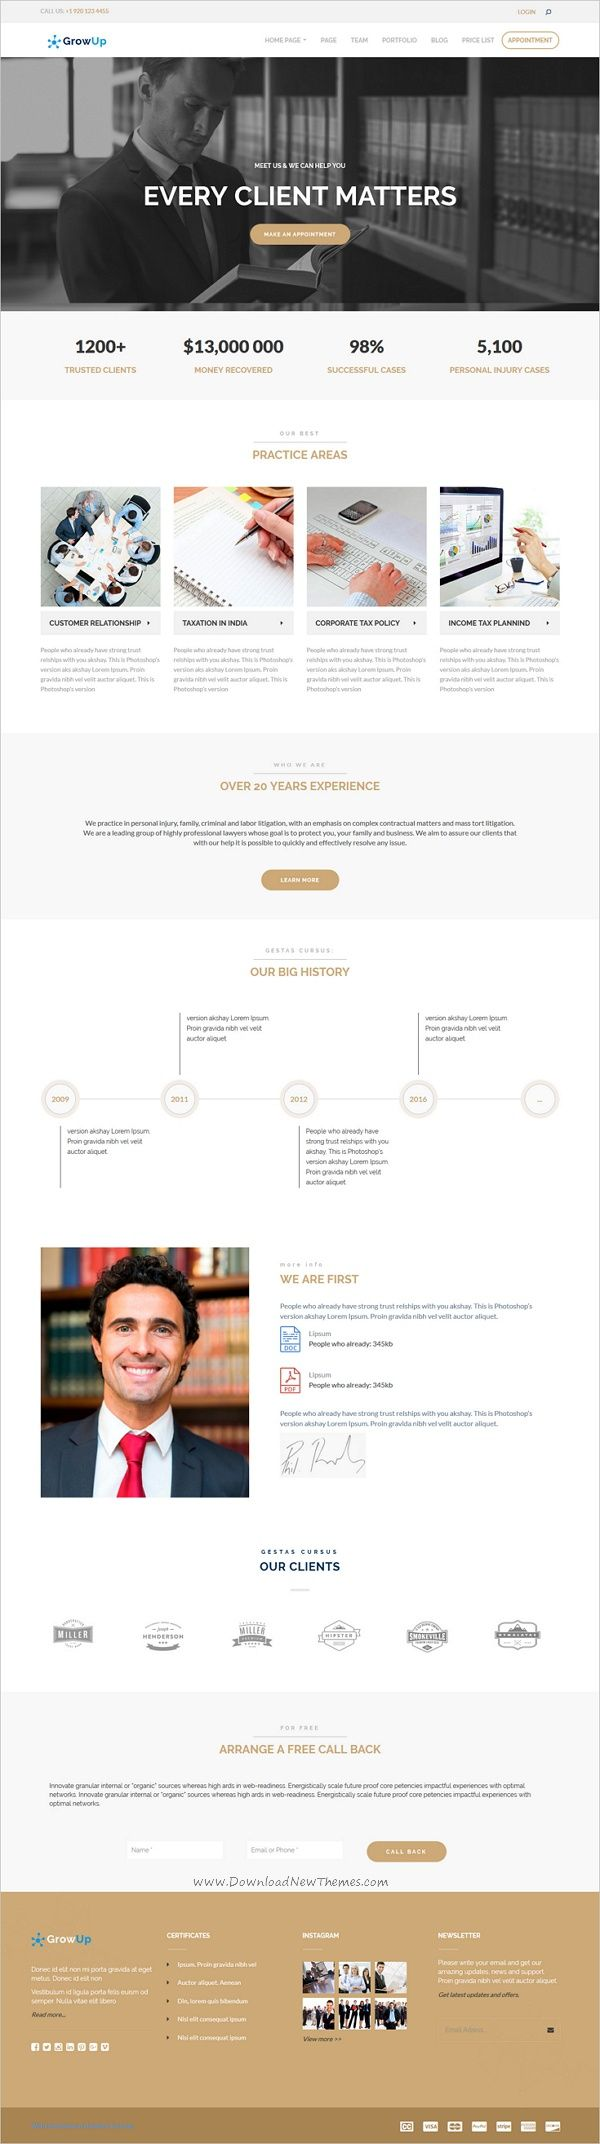 GrowUp is a modern design 6in1 professional #WordPress theme for #Lawyer #attorney and business, financial websites download now➩ https://themeforest.net/item/growup-business-financial-wordpress-theme/18761663?ref=Datasata